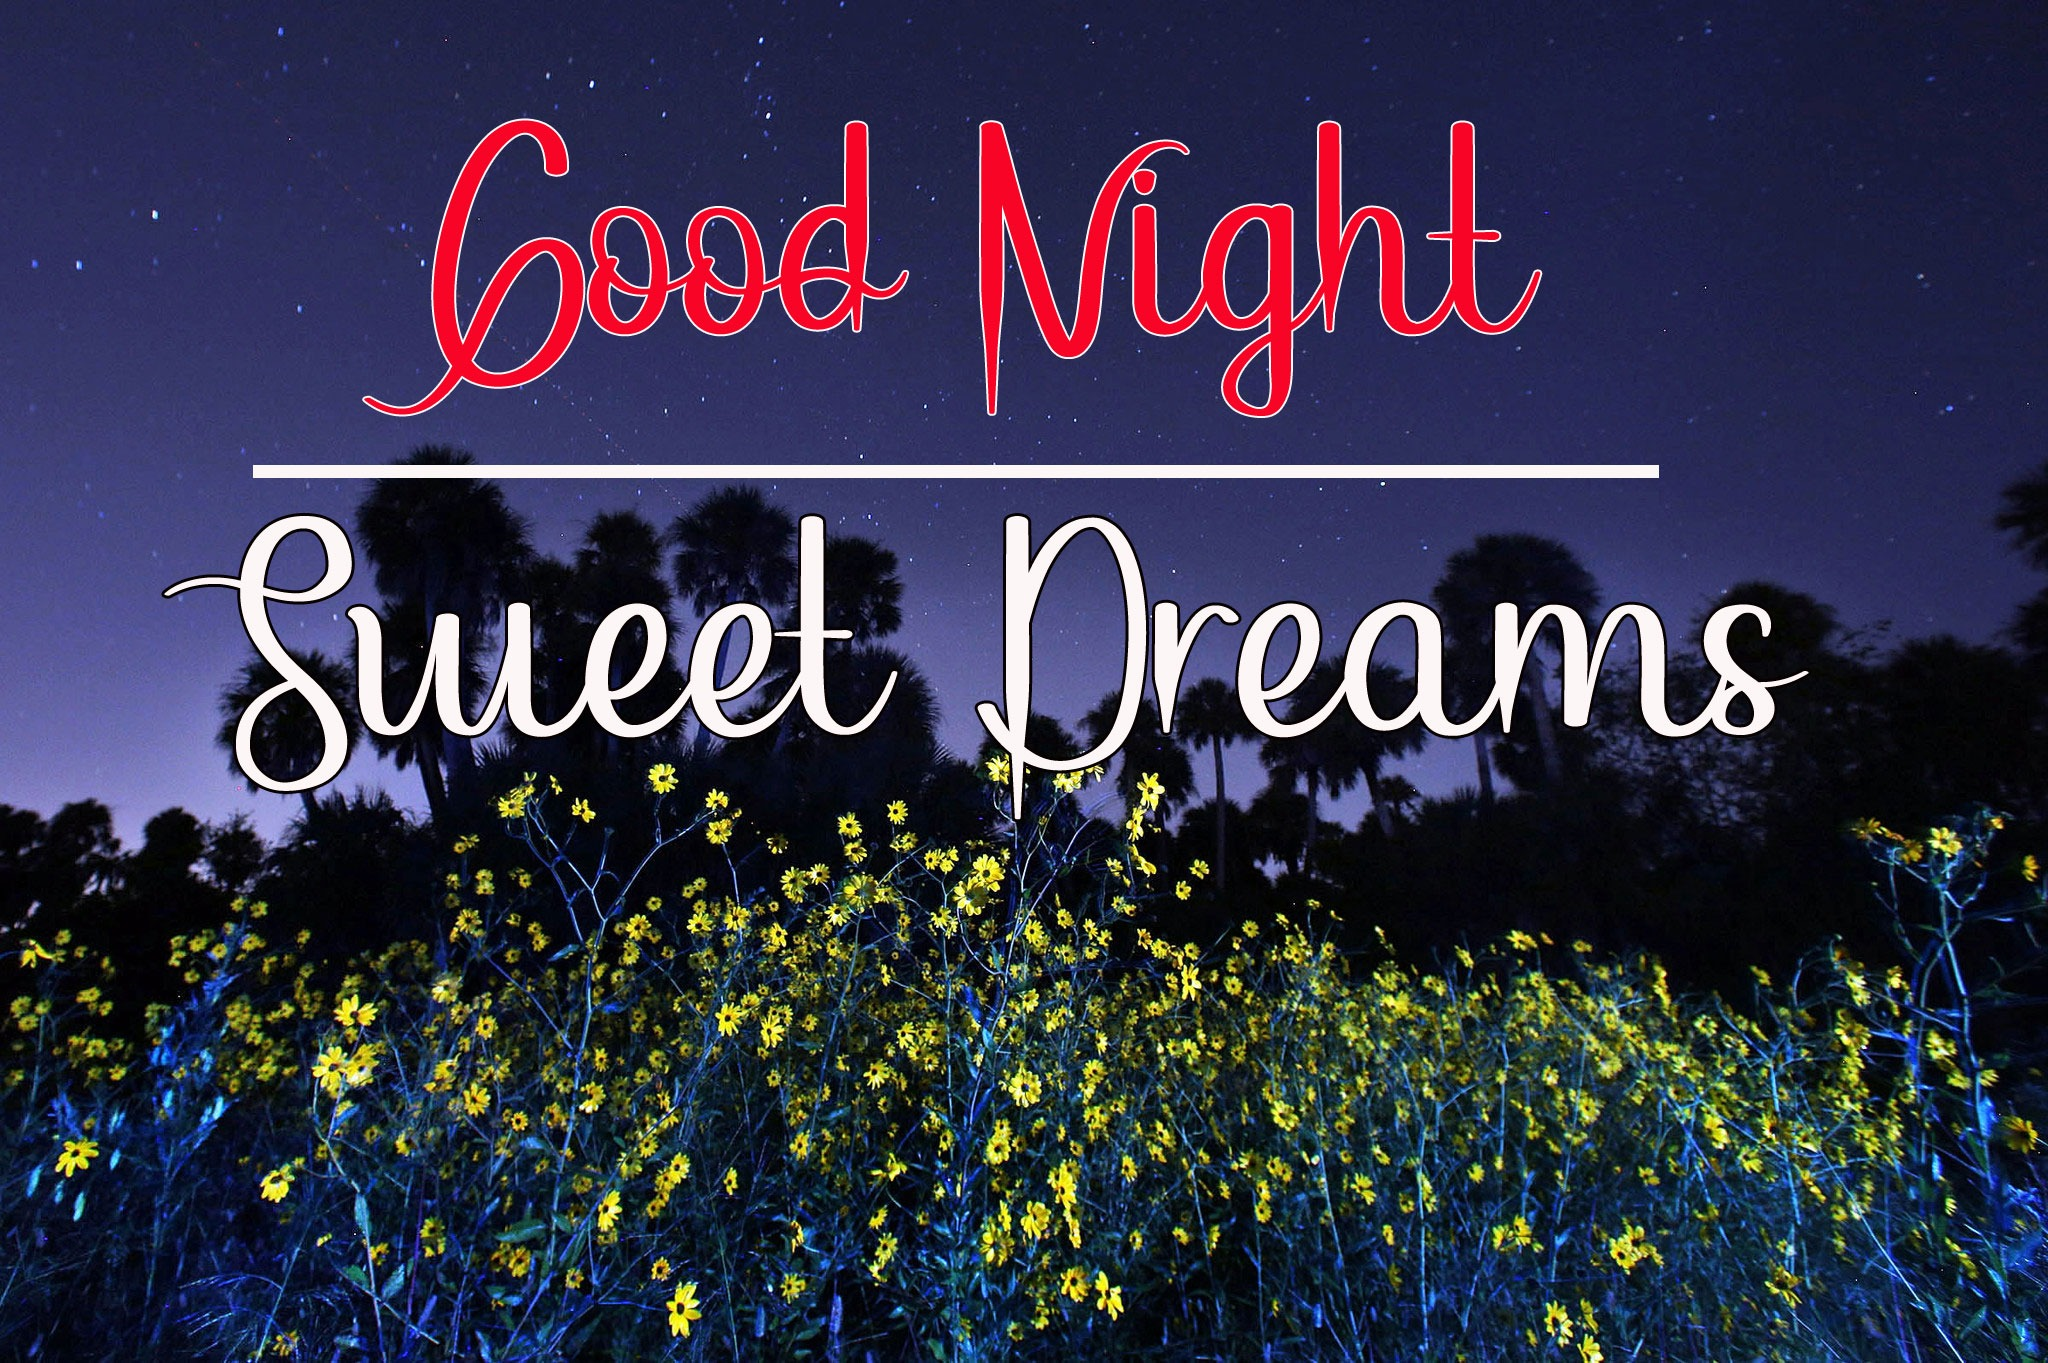 Beautiful Good Night Images pictures for free hd